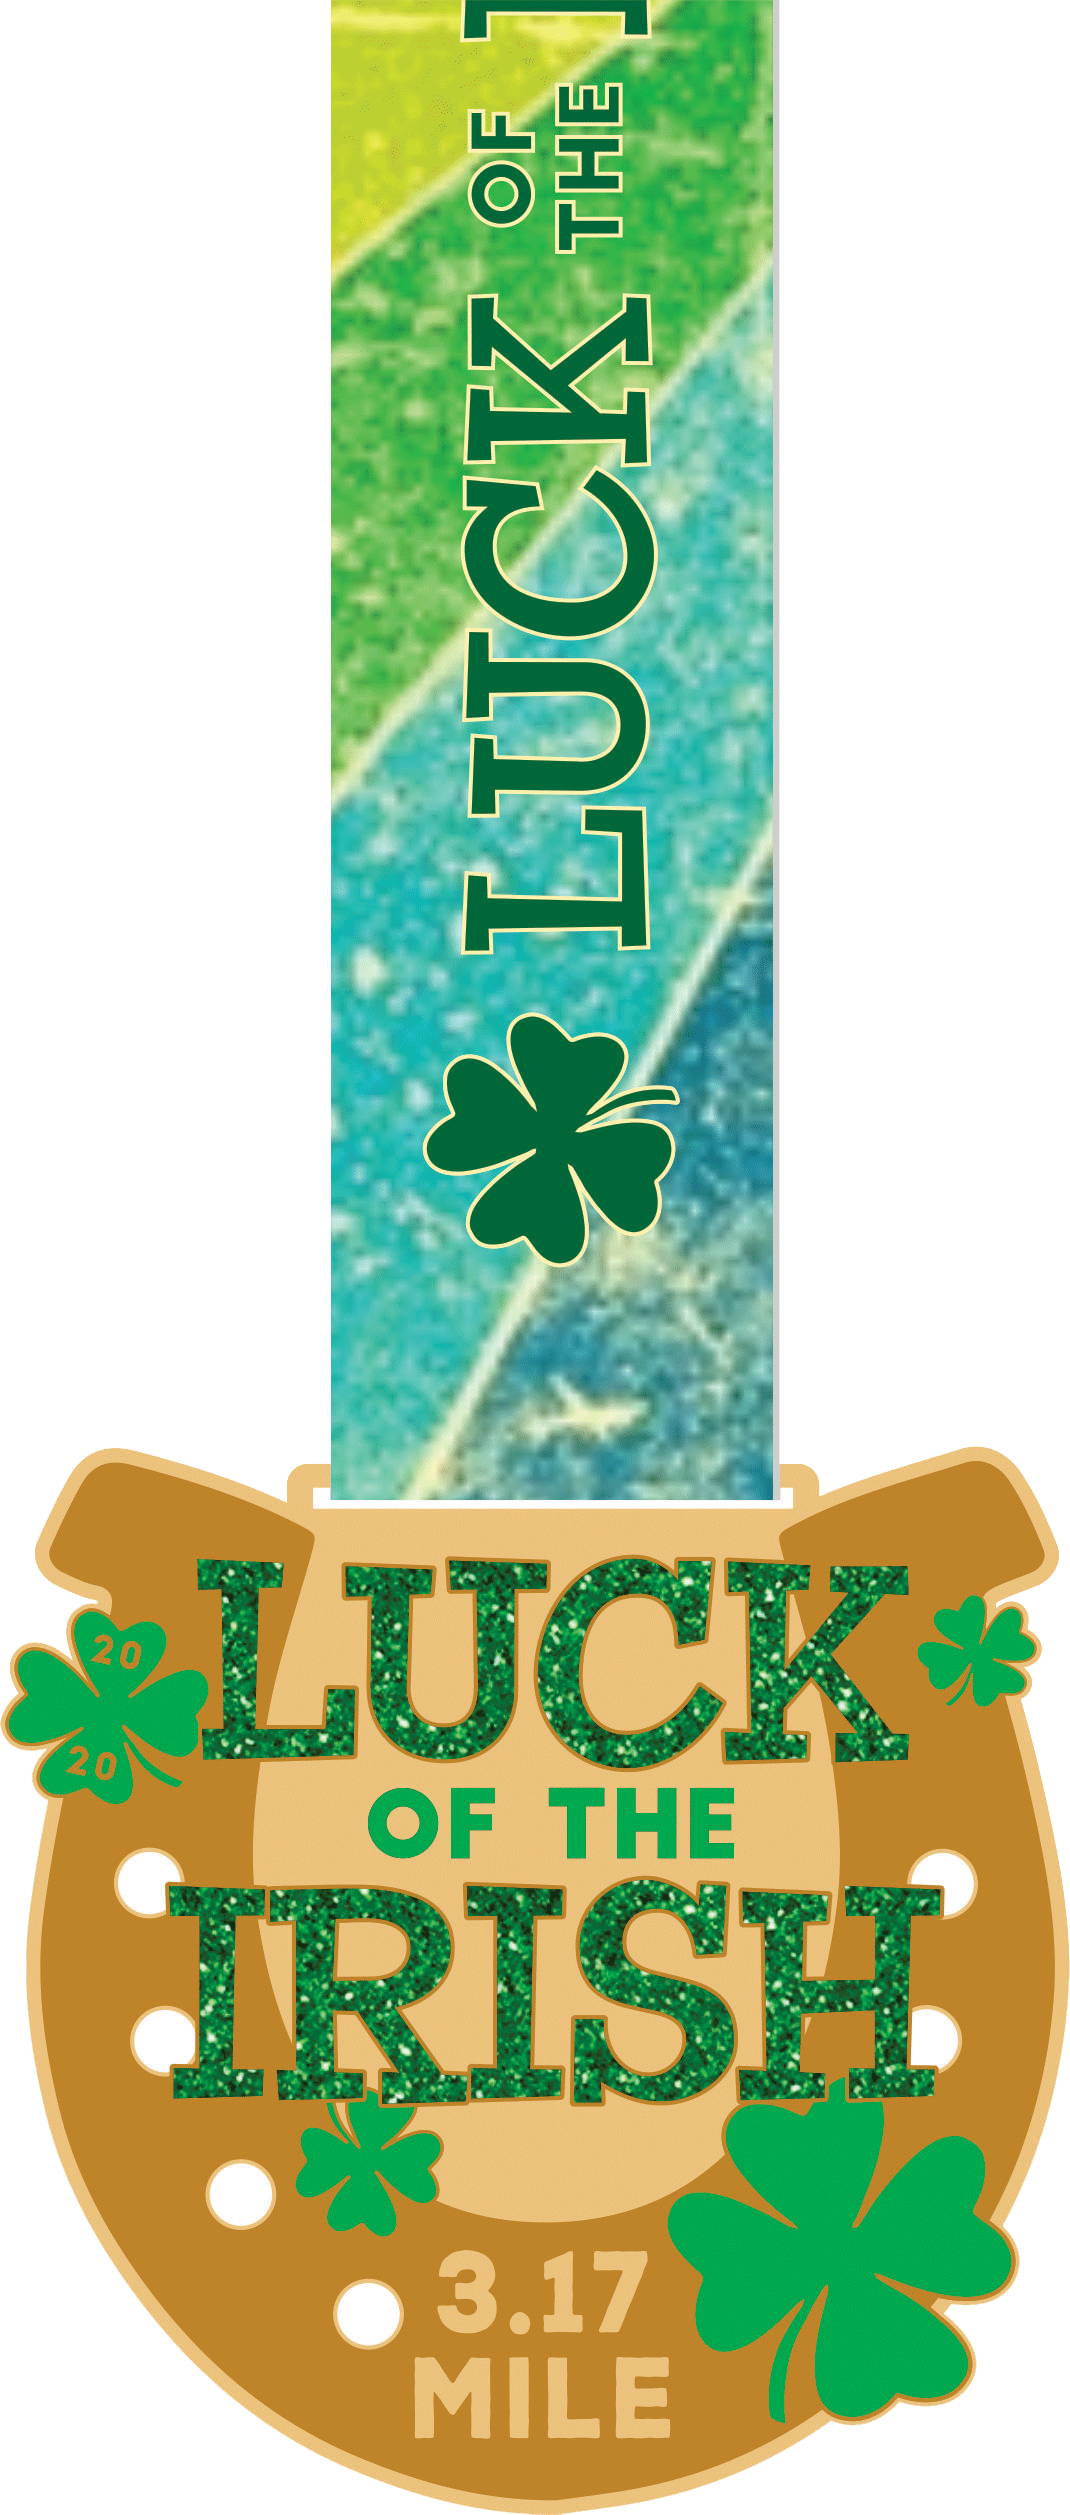 Minneapolis Events March 2020.2020 Luck Of The Irish 3 17 Mile 5k Minneapolis Tickets